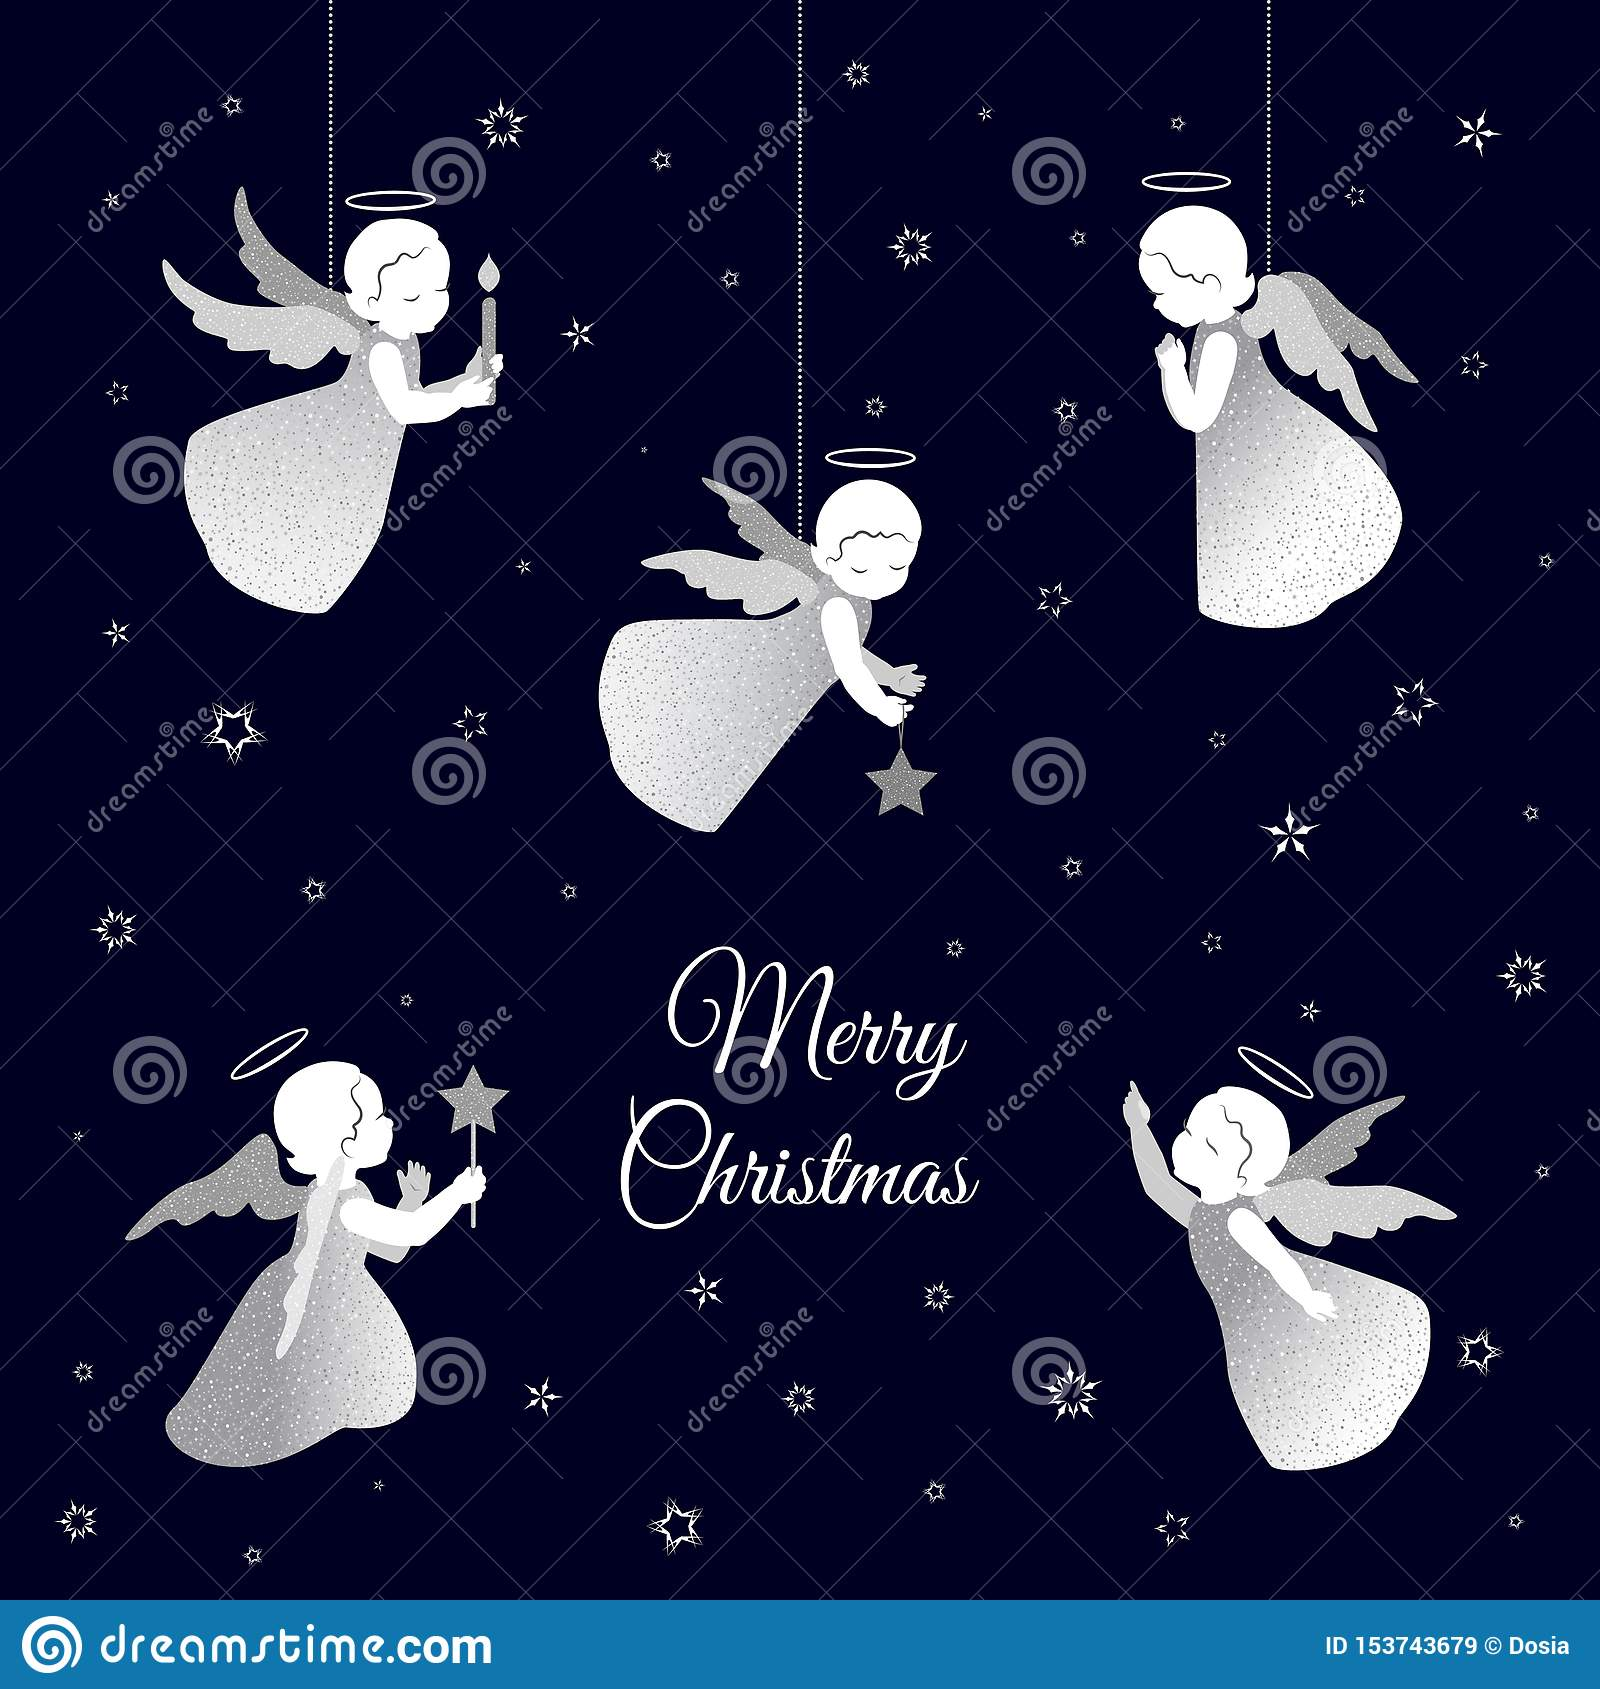 Merry Christmas card with white angels and snowflakes